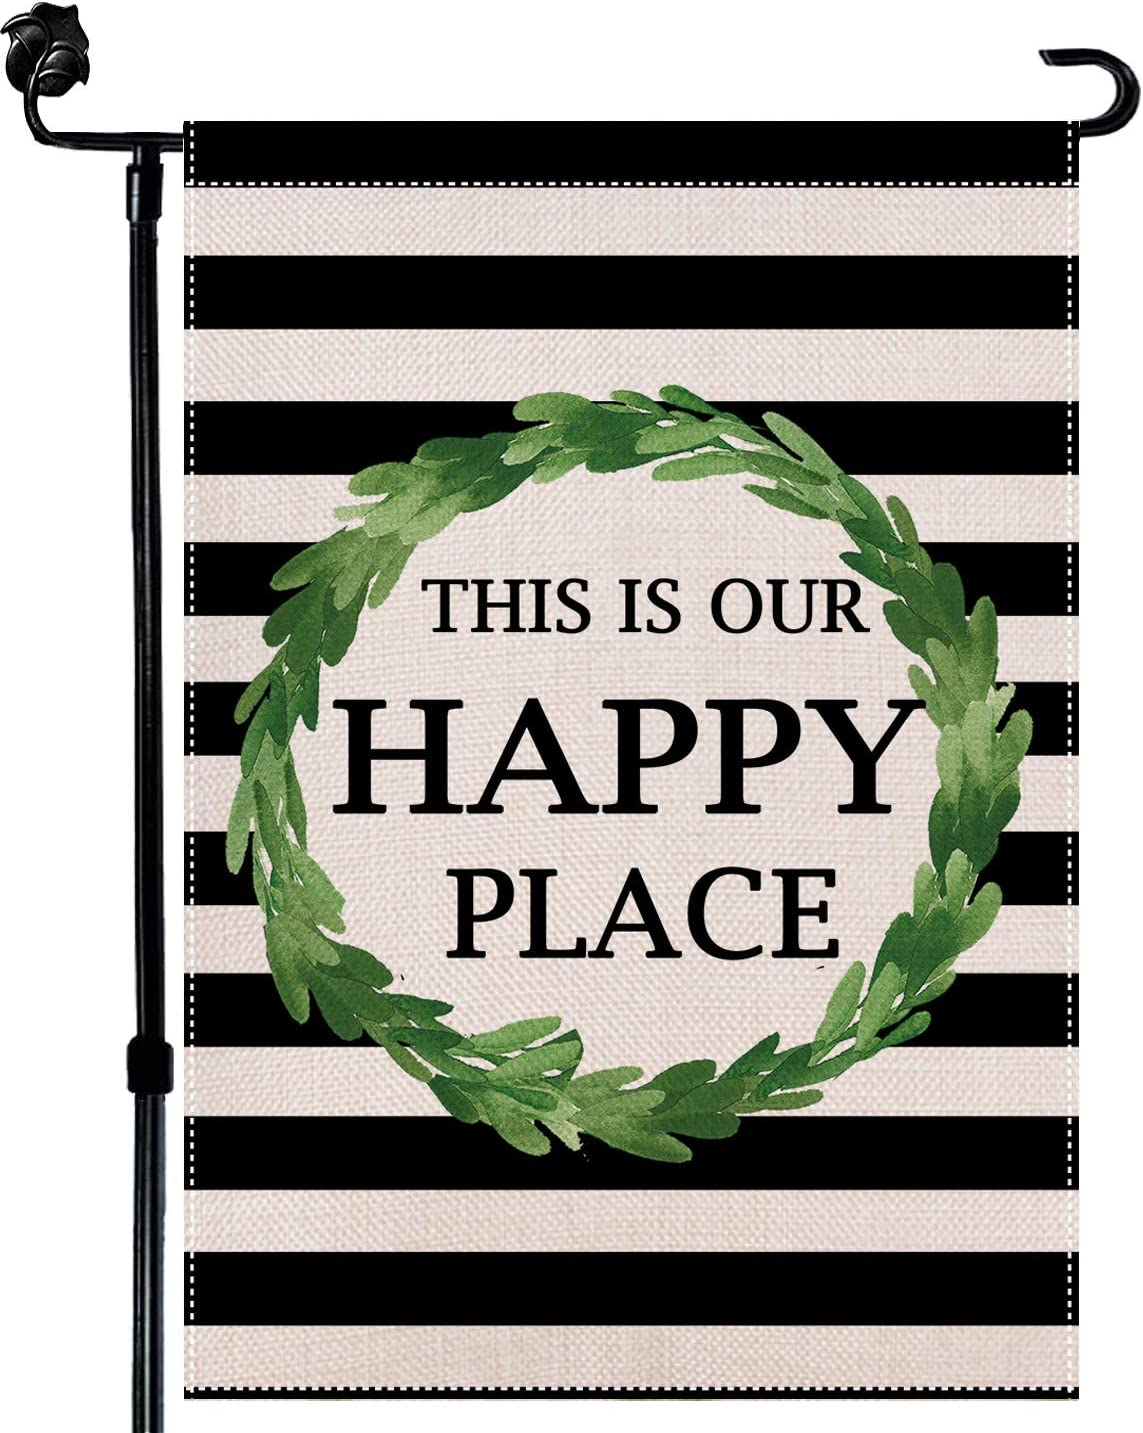 Baikey Garden Flag, Yard Flag This is Our Happy Place Stripes Wreath Rustic Vertical Double Sized Flag for Farmhouse Home Outdoor Decoration 12.5 x 18 Inch